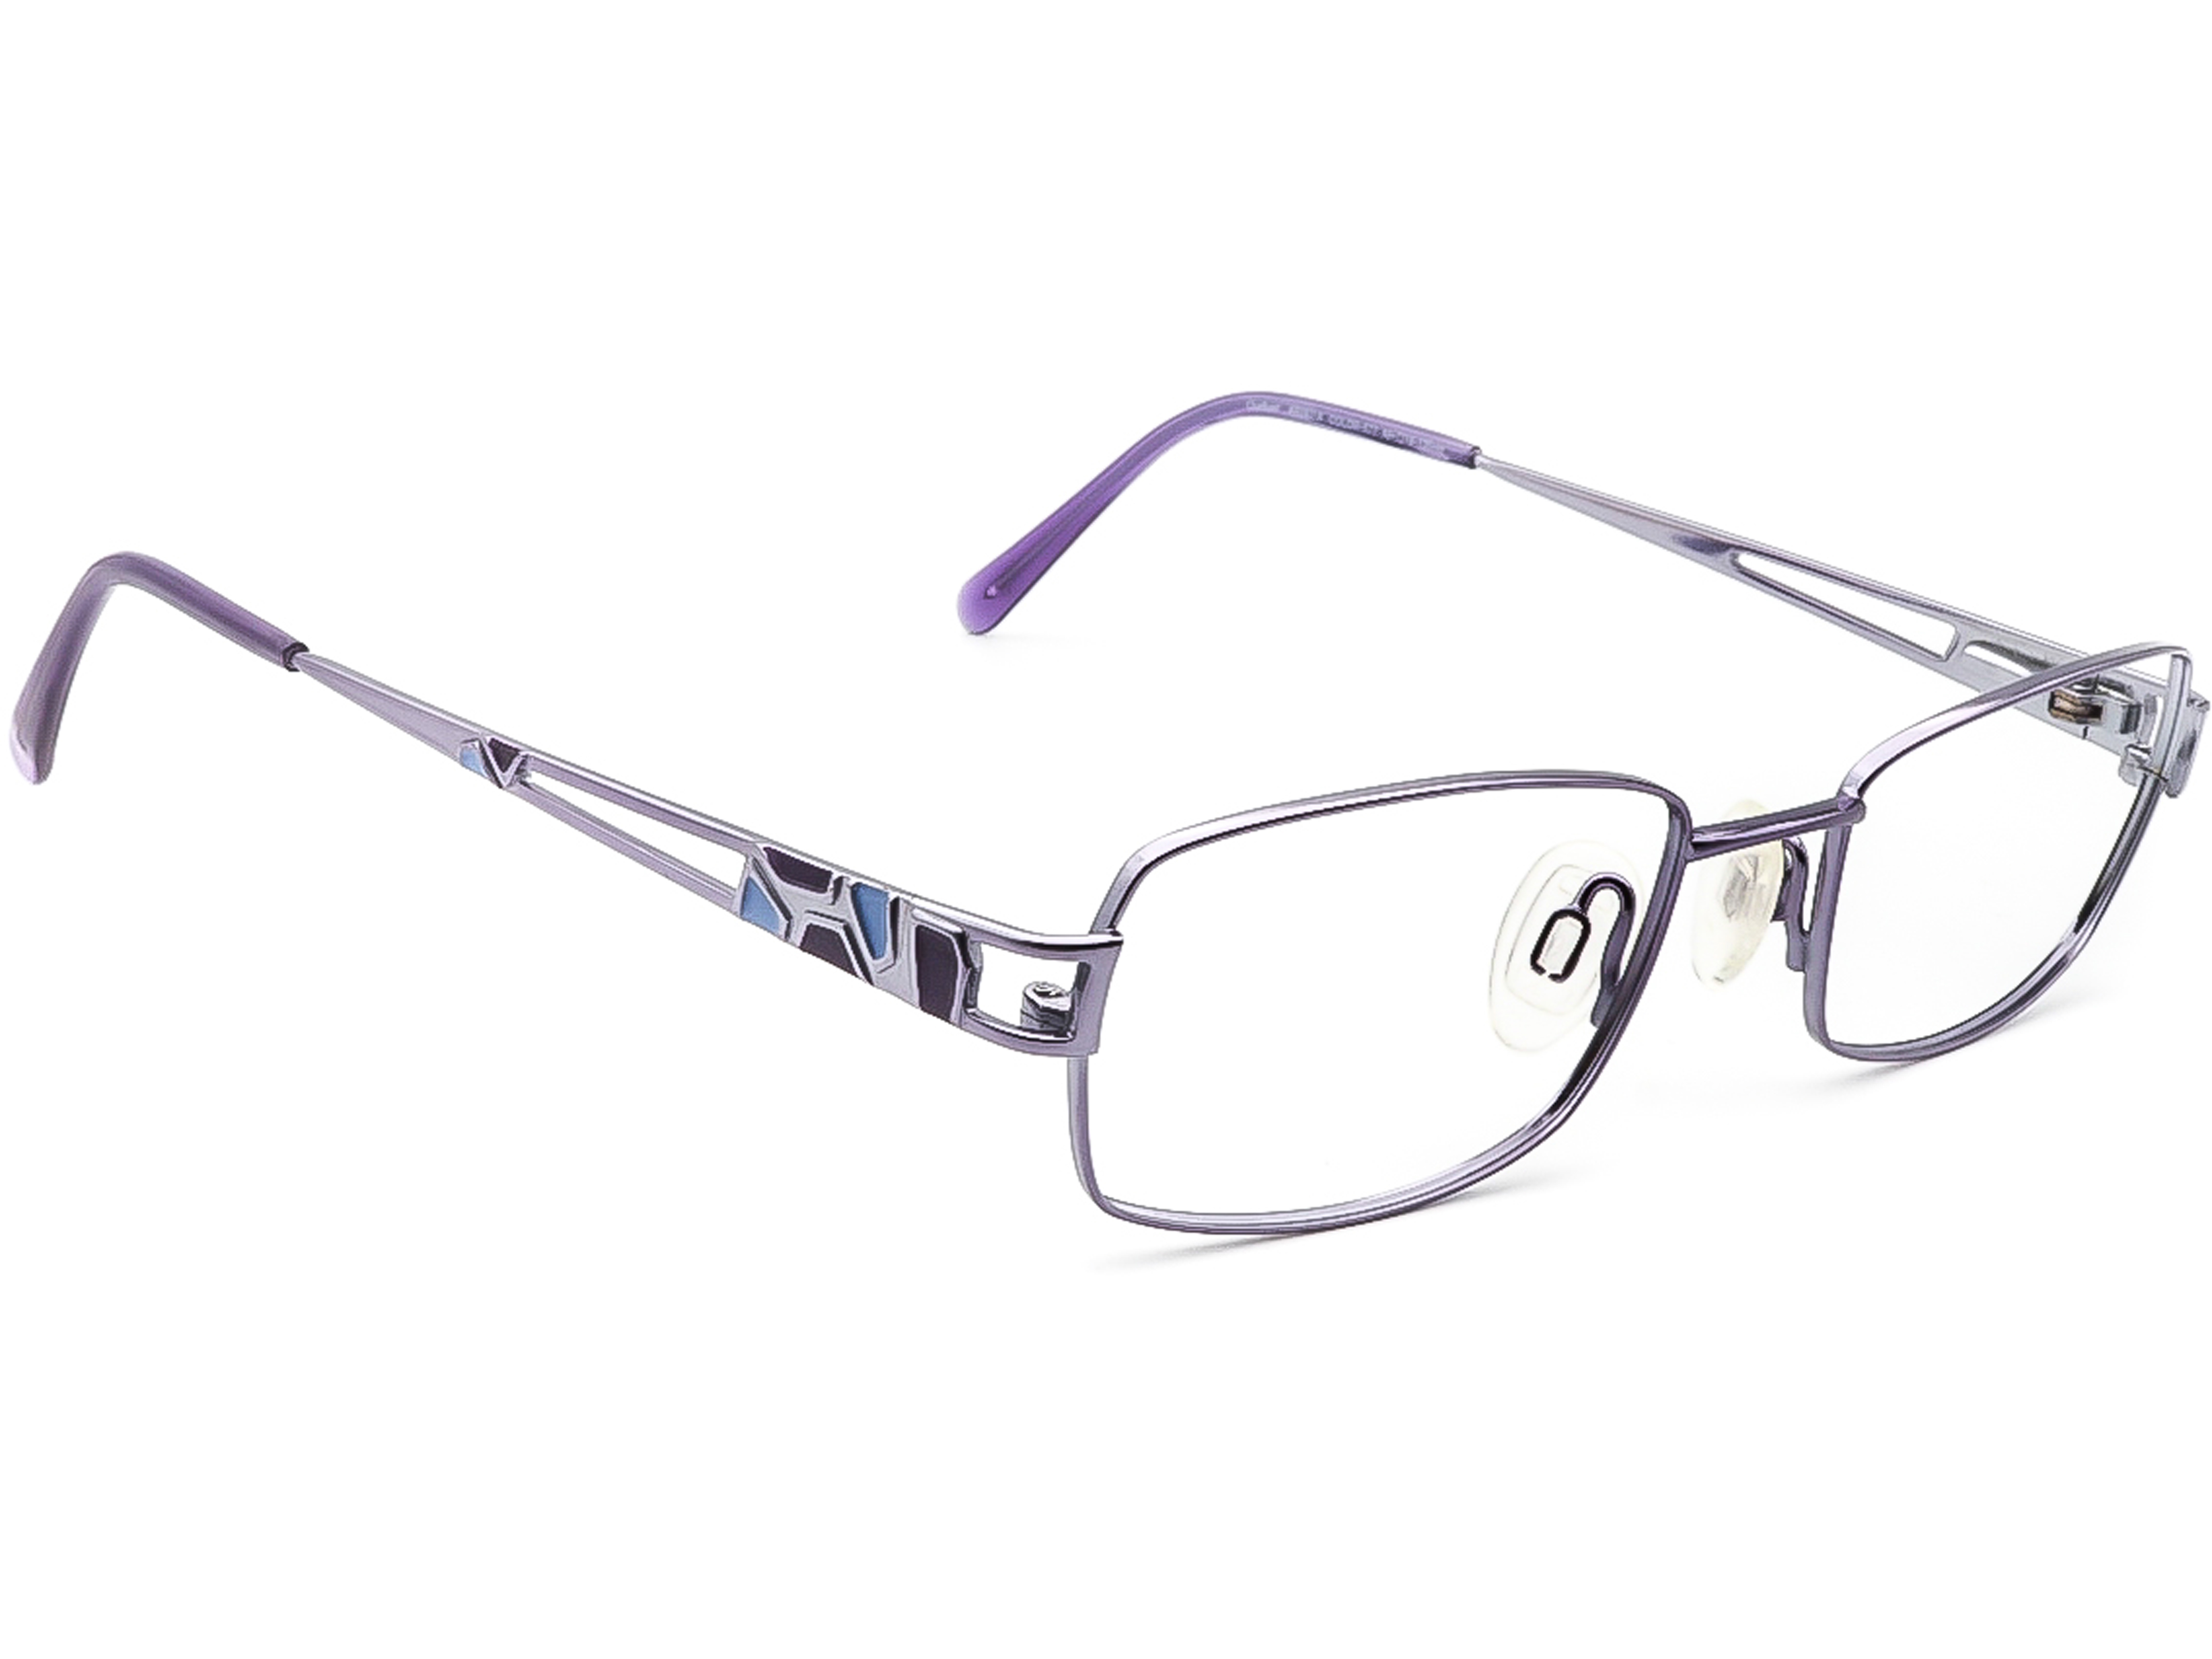 Charmant AR16316 Aristar Color-577 Eyeglasses